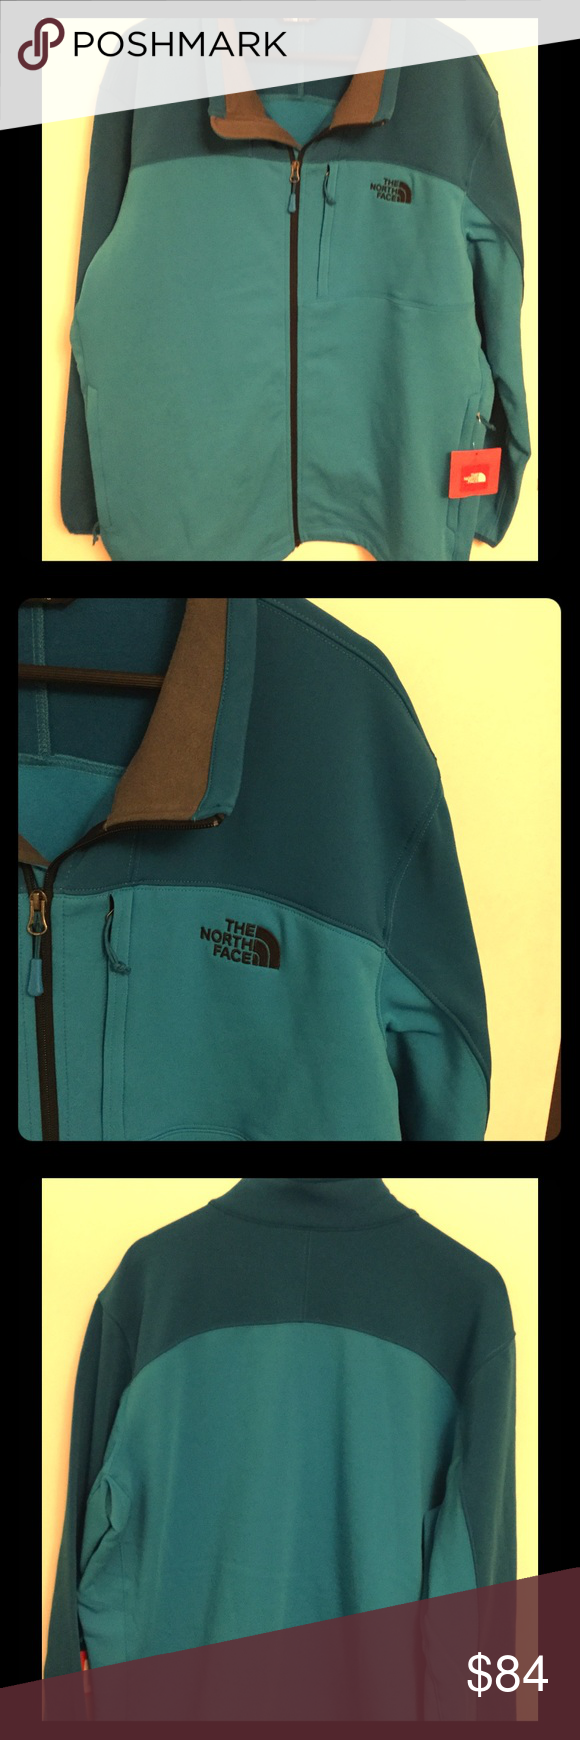 030ed3c6f NWT The North Face Men's 200 Cinder FZ jacket XXL Brand new with tag ...